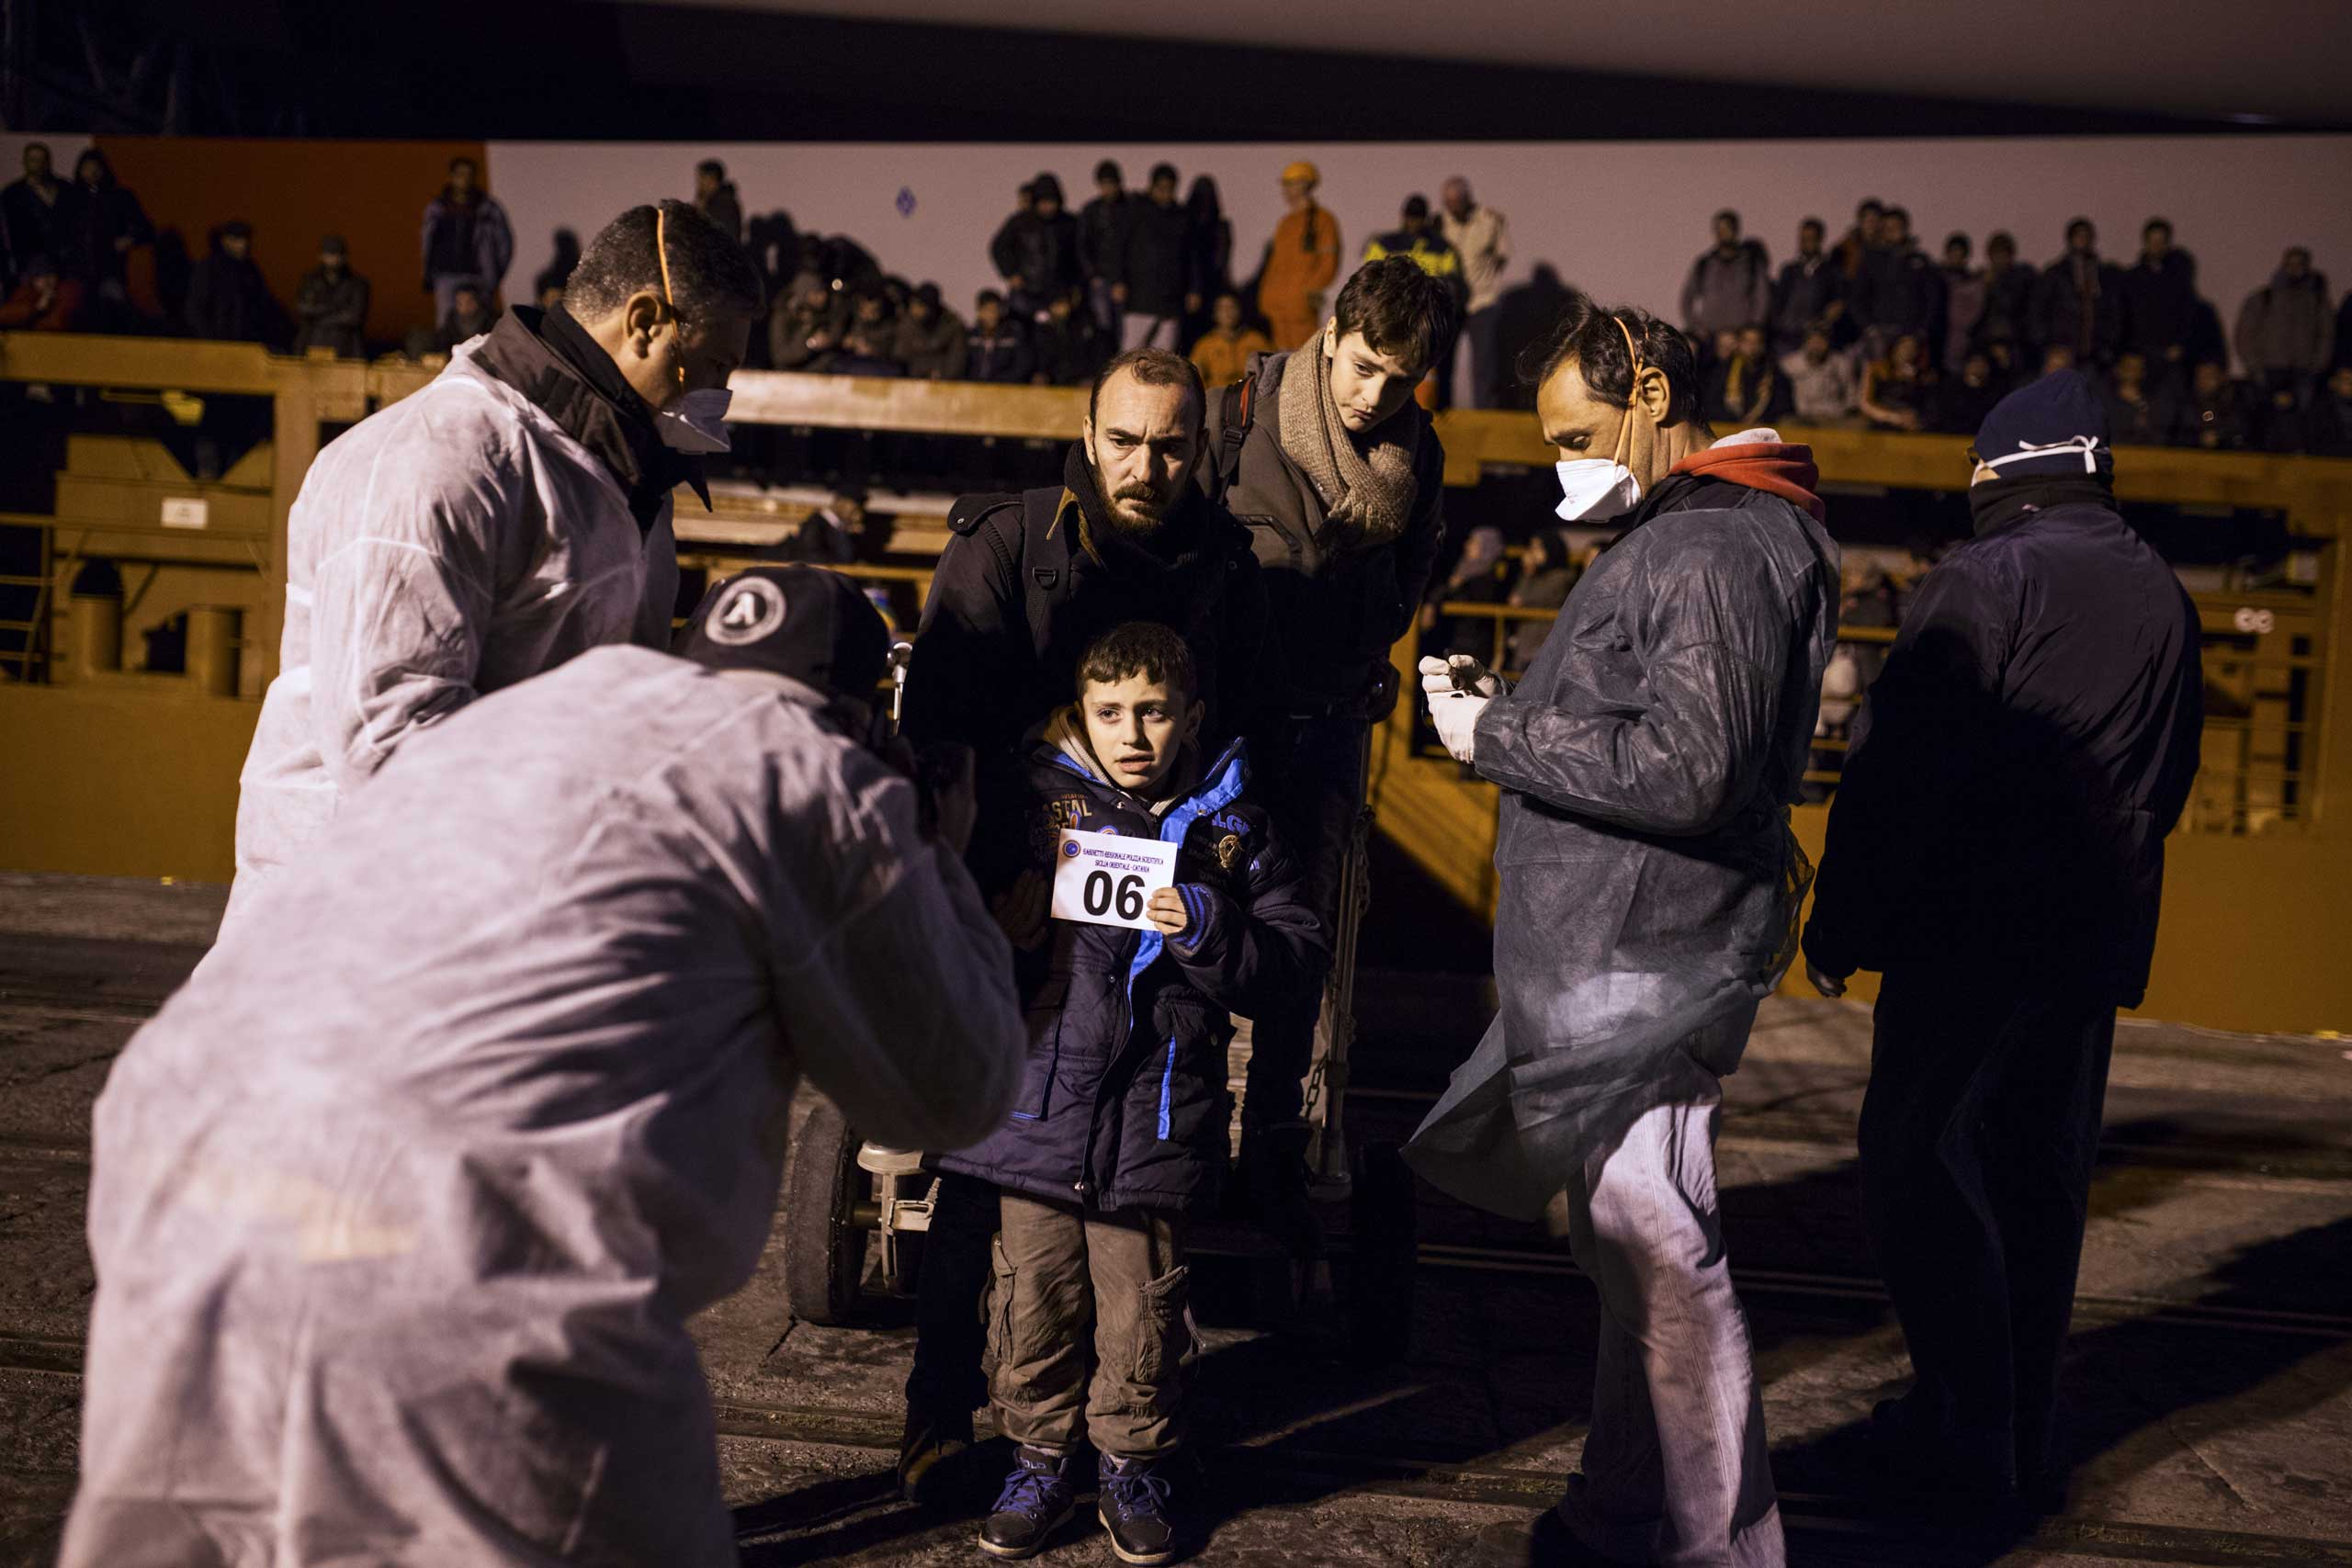 A family of Syrian refugees holds its identification. Nearly 300 Syrians landed in the port of Catania, Dec. 6, 2014.